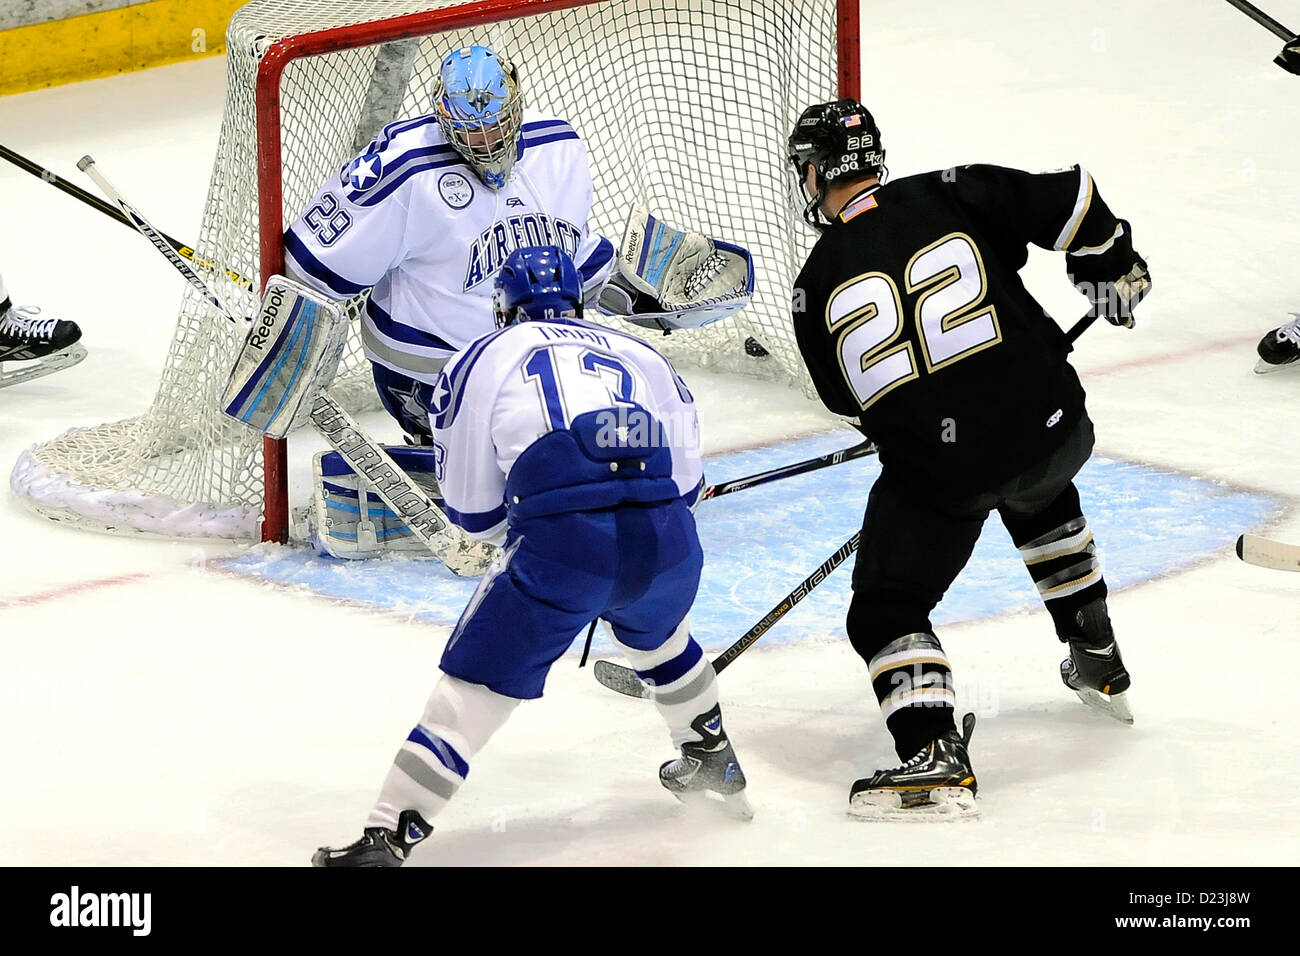 Army's Thane Heller gets one past Air Force goaltender Jason Torf as the Air Force Falcons met the Army Black - Stock Image